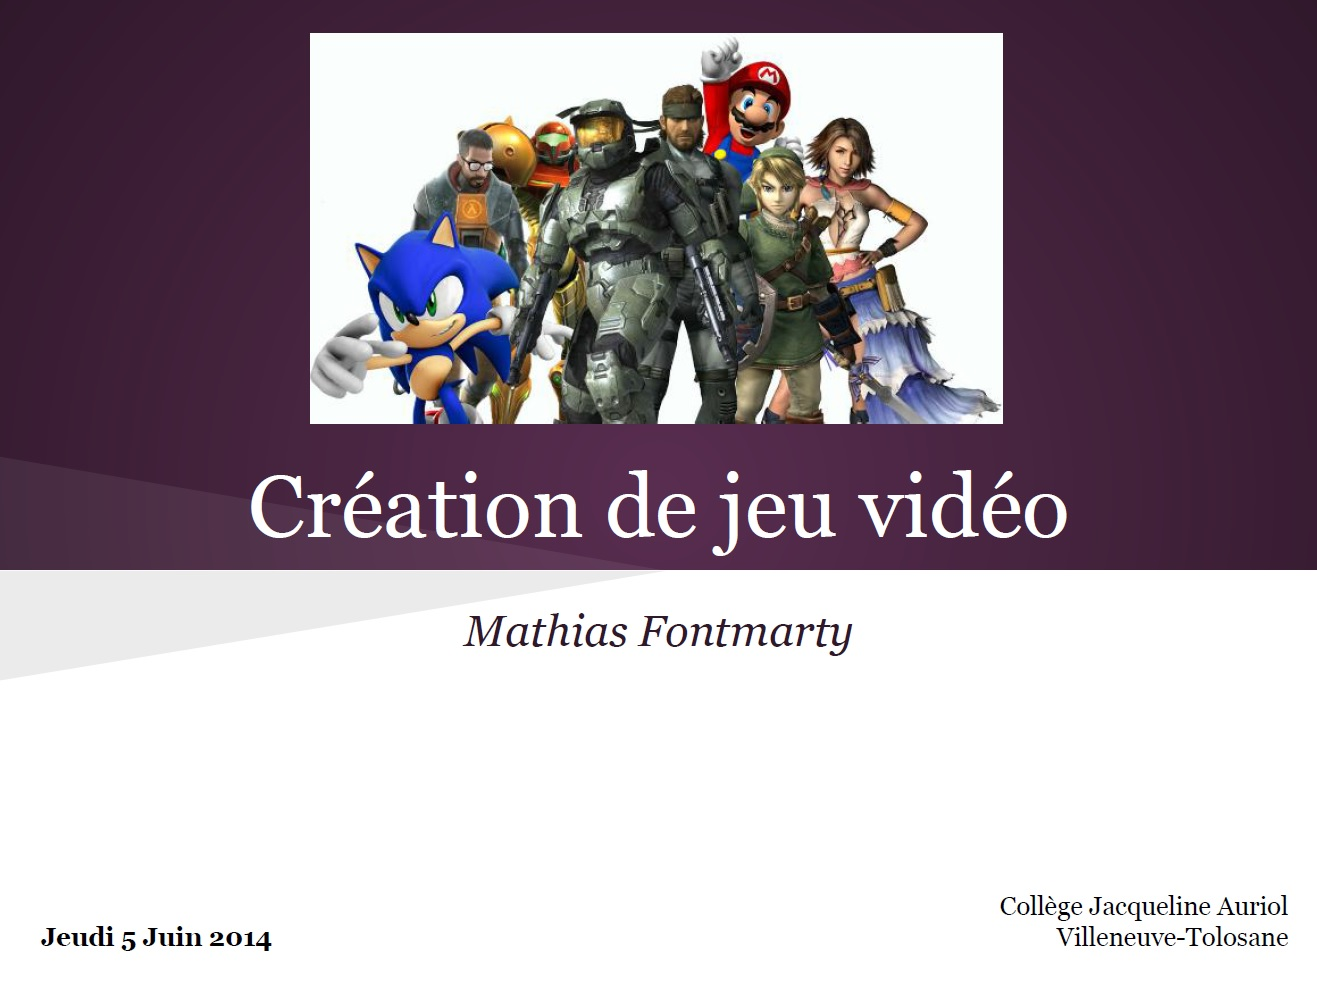 http://www.oneiricworlds.com/siteResources/presentation/creationJeuVideo.pdf